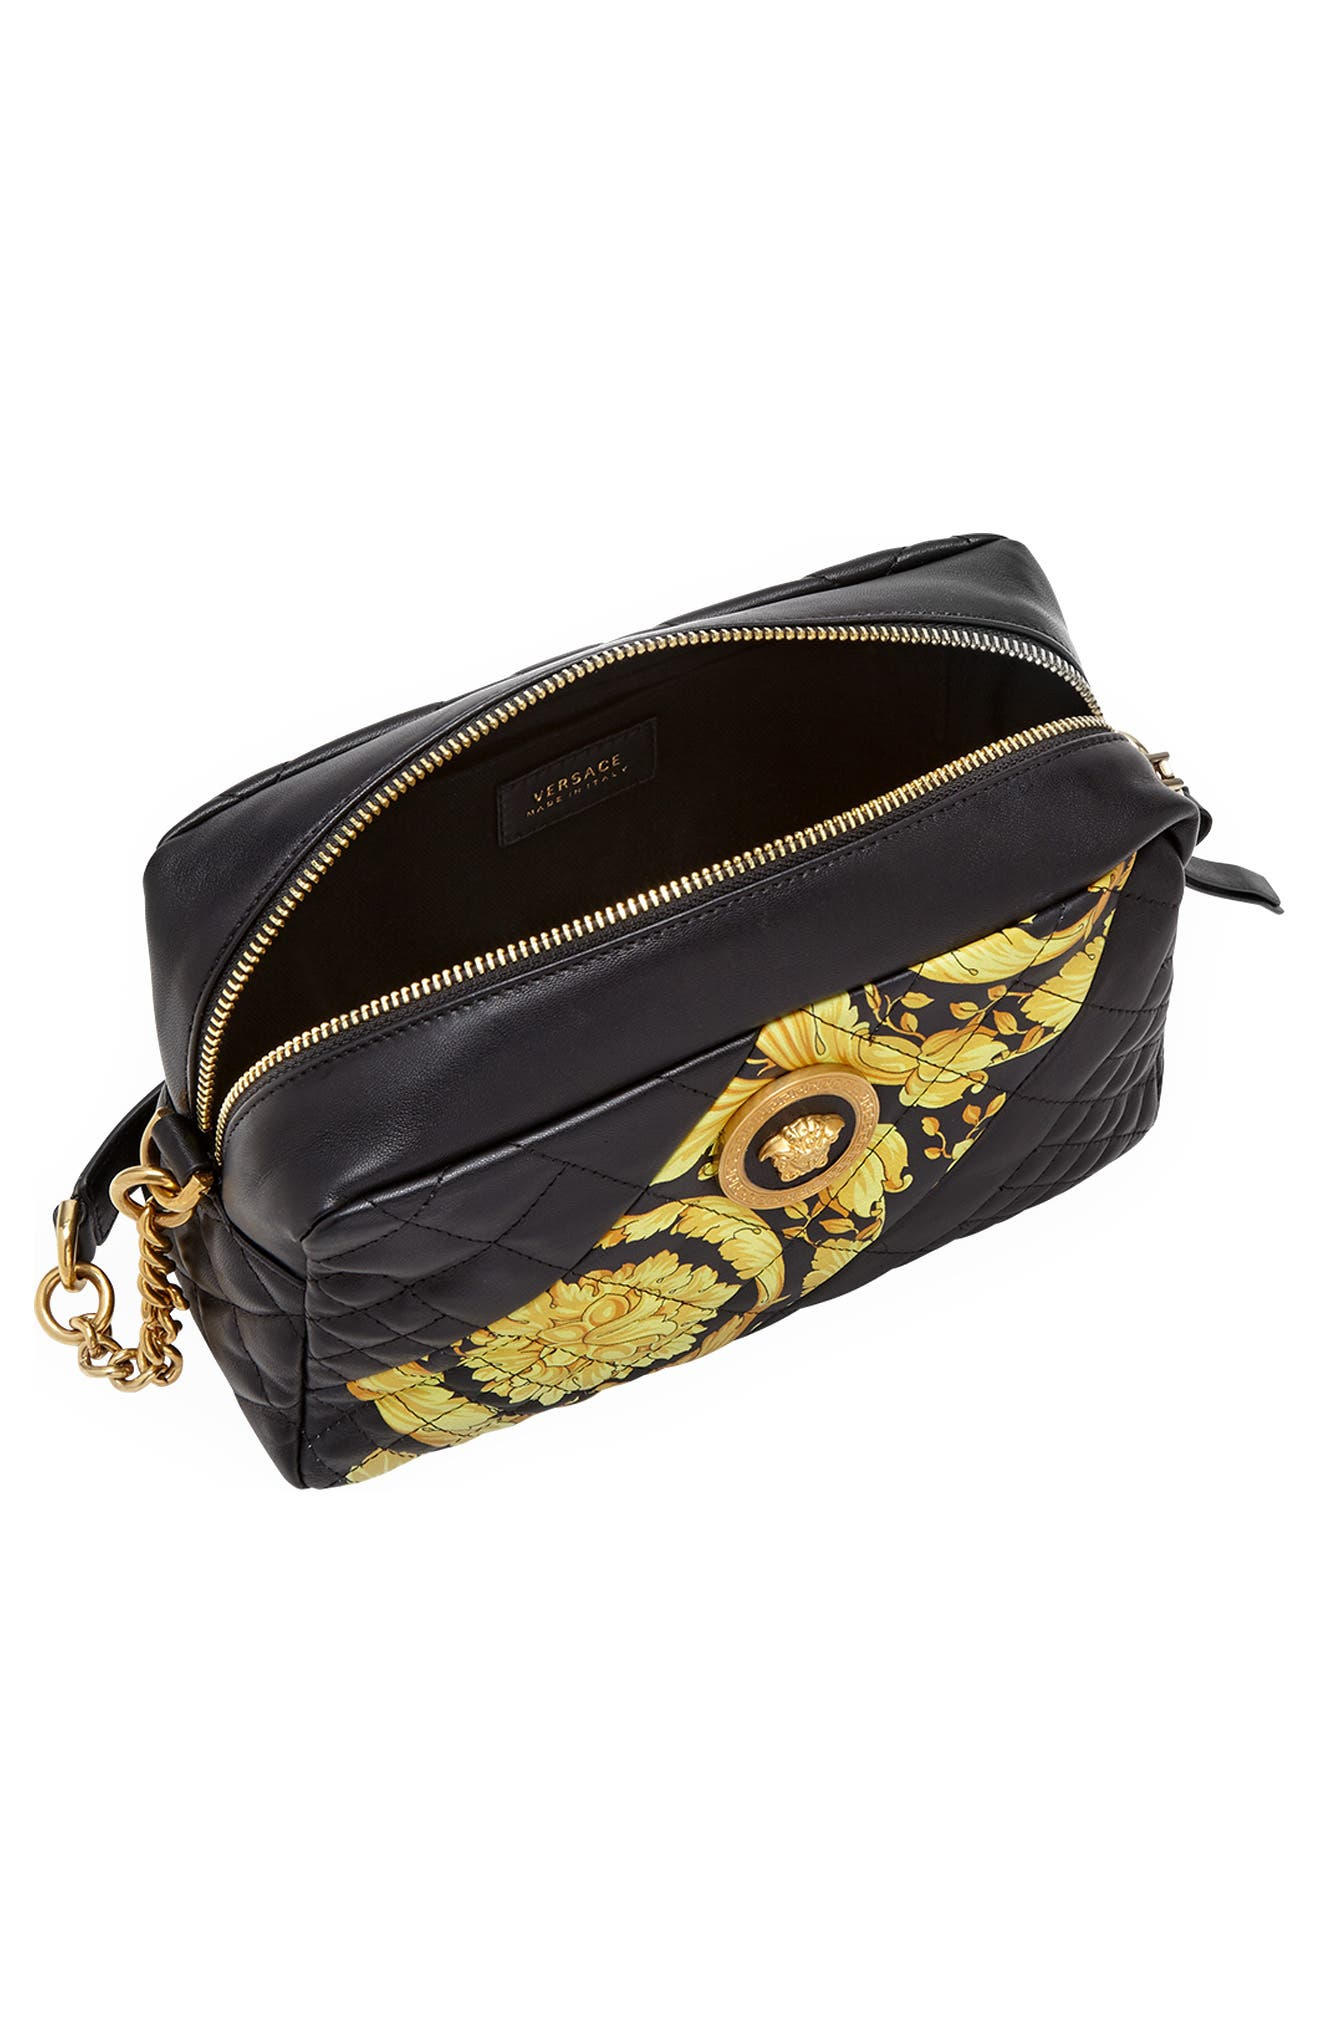 Baroque Icon Quilted Leather Camera Bag,                             Alternate thumbnail 4, color,                             BLACK MULTI/ TRIBUTE GOLD